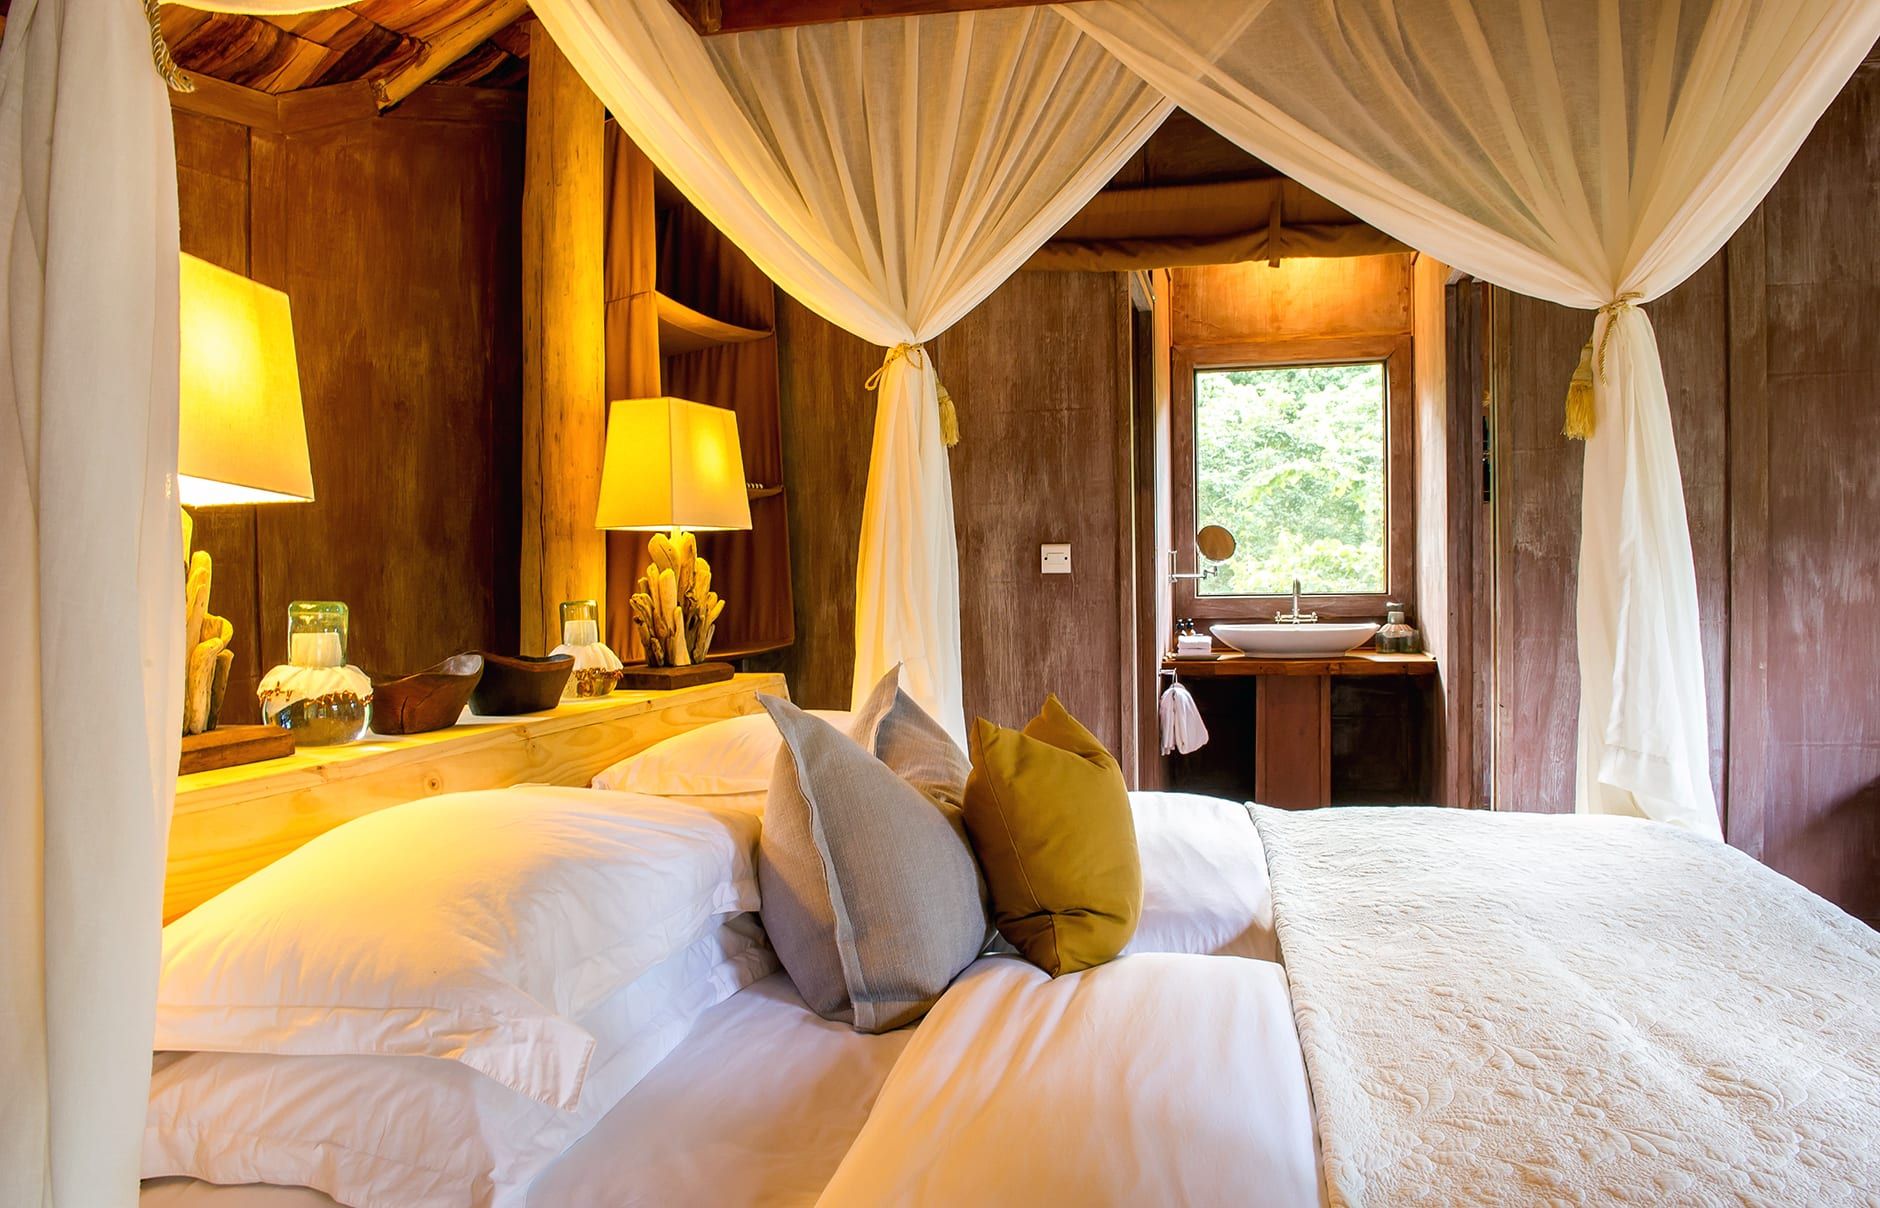 andBeyond Lake Manyara Tree Lodge, Tanzania. Hotel Review by TravelPlusStyle. Photo © &Beyond